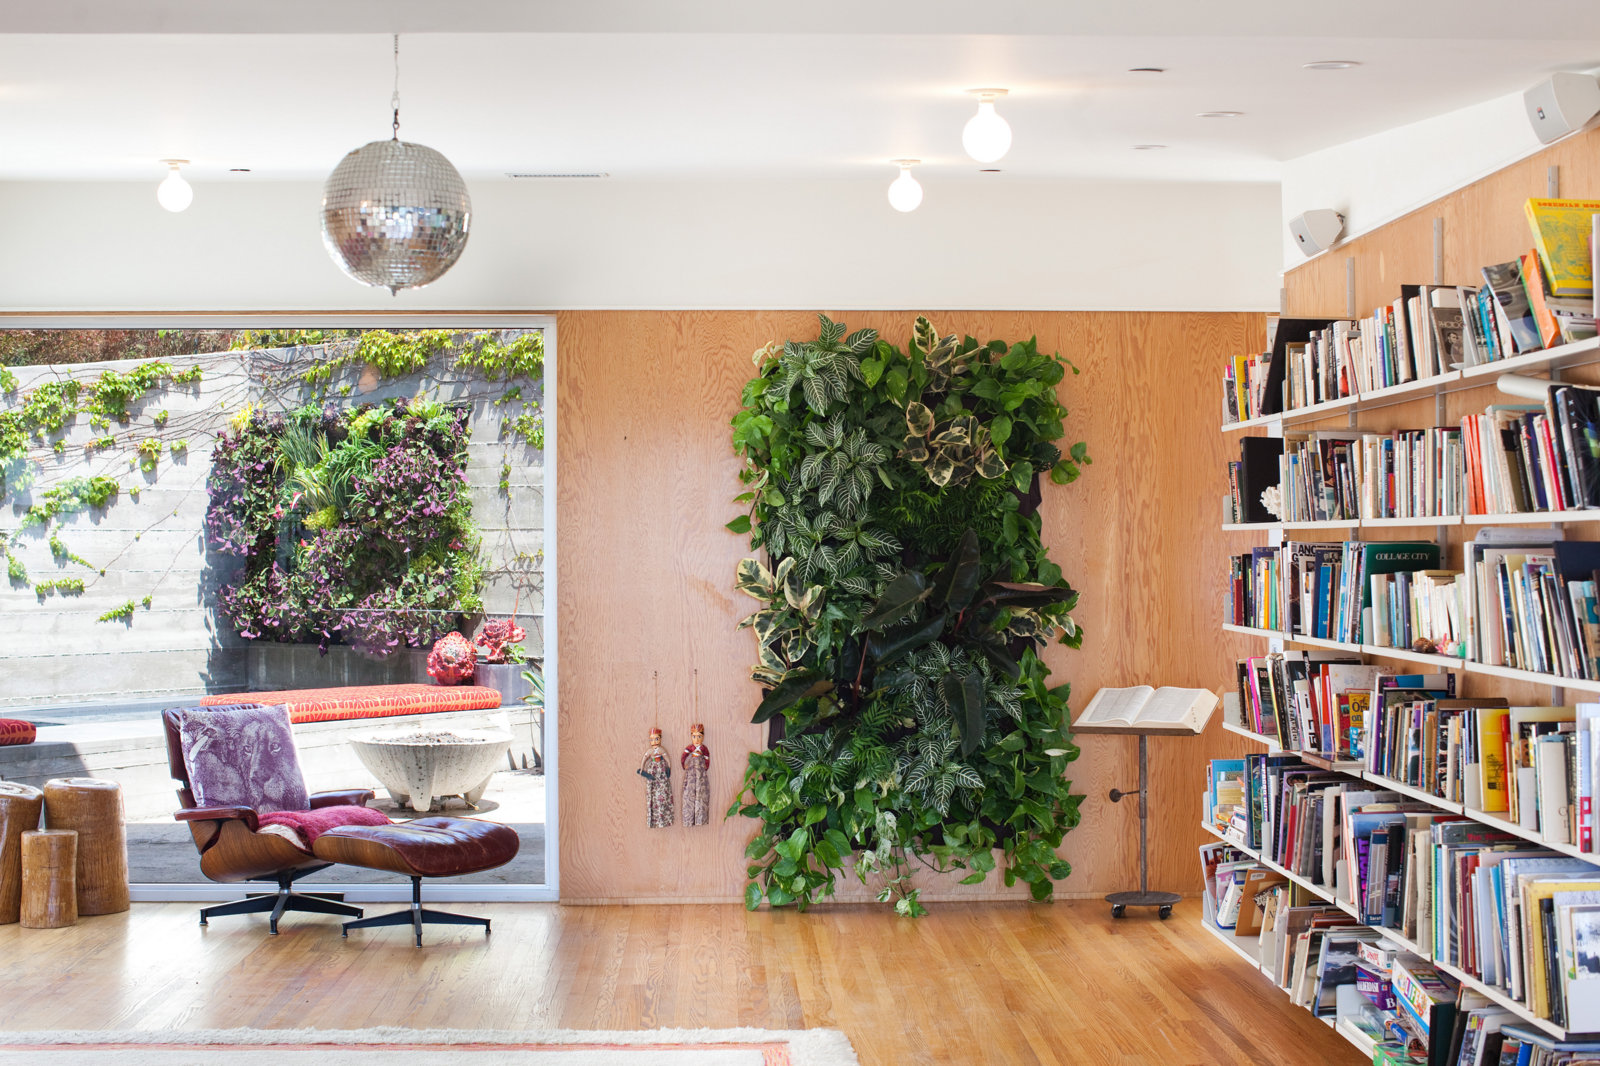 Living Wall In Indoor Plant Decor